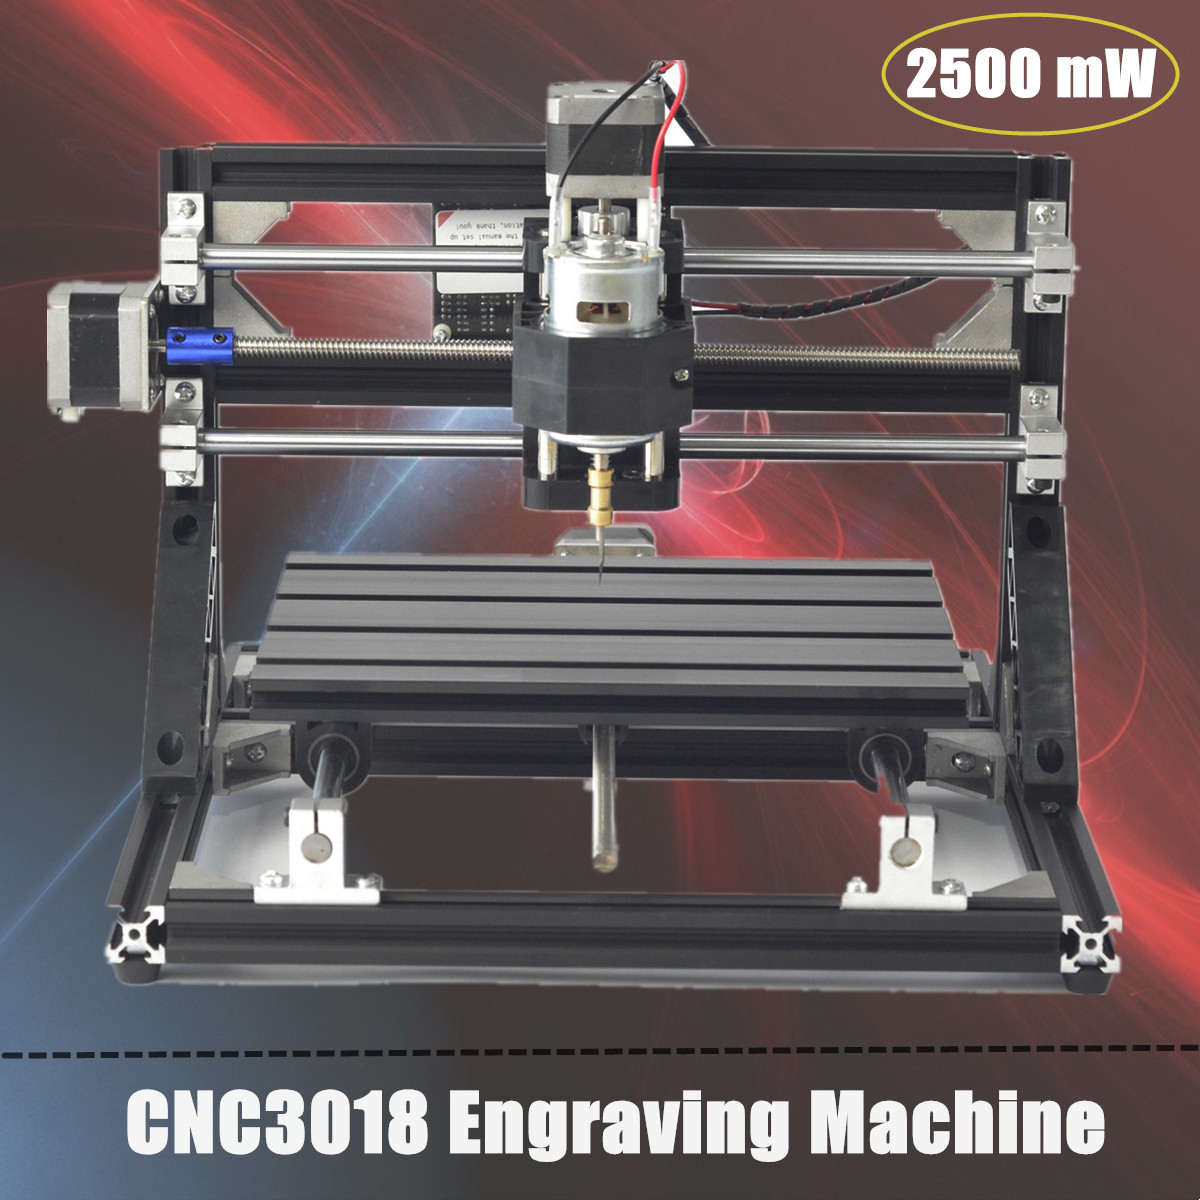 110V -240V CNC 3018 Engraving Machine Wood Router Woodworking Machinery Carving Machine Or With 5500mW Laser Head Self Assembly